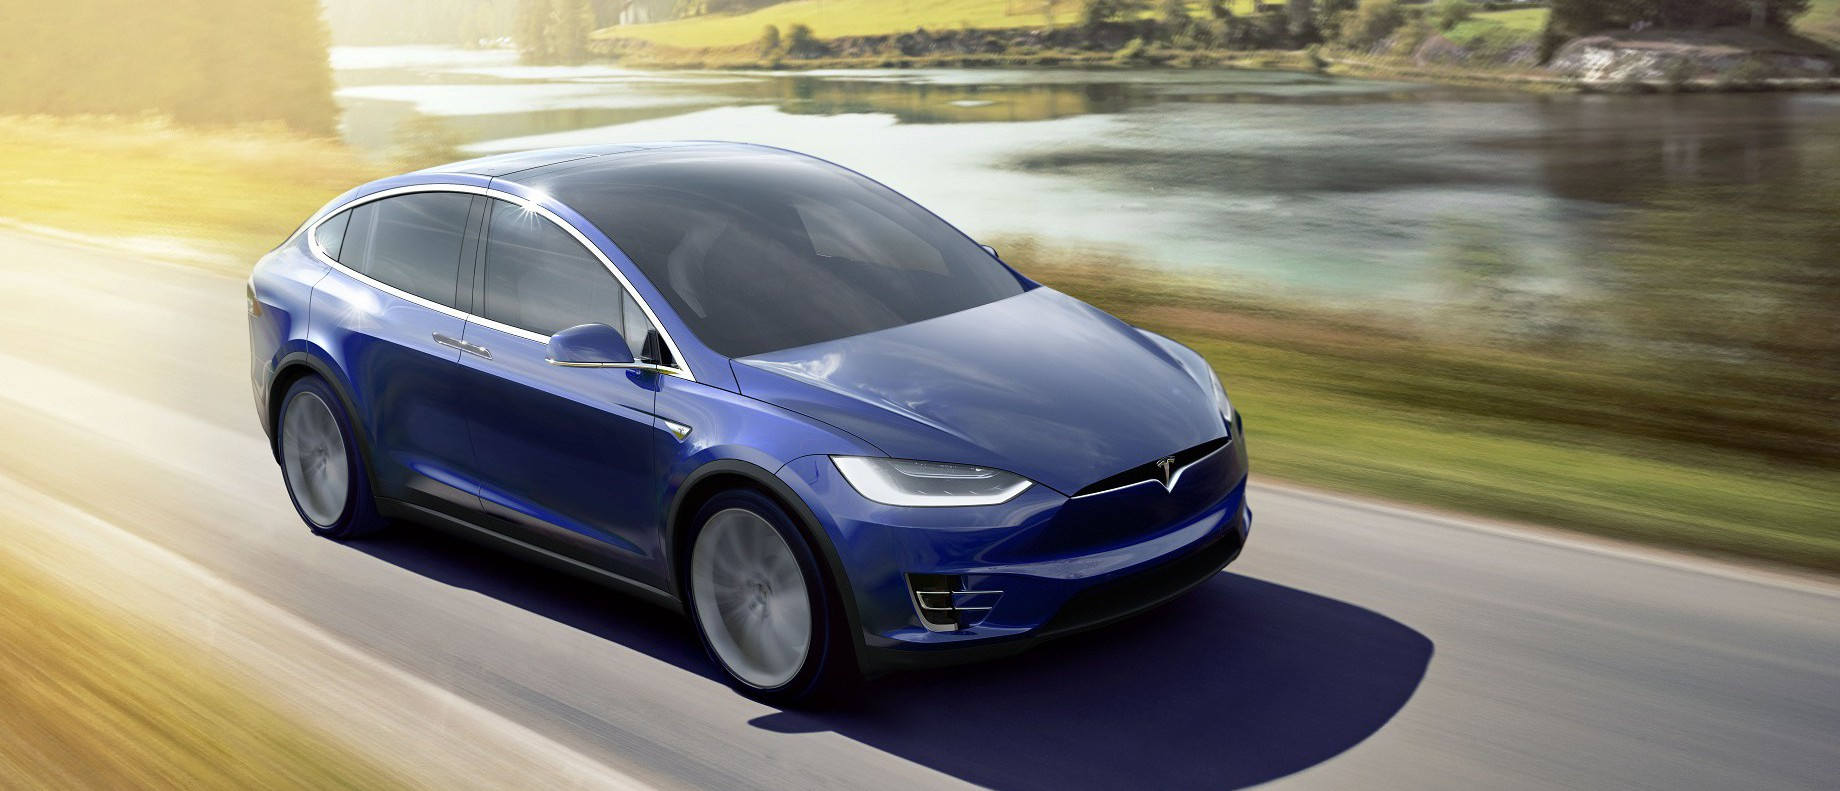 Tesla-model-x-blue-driving-2